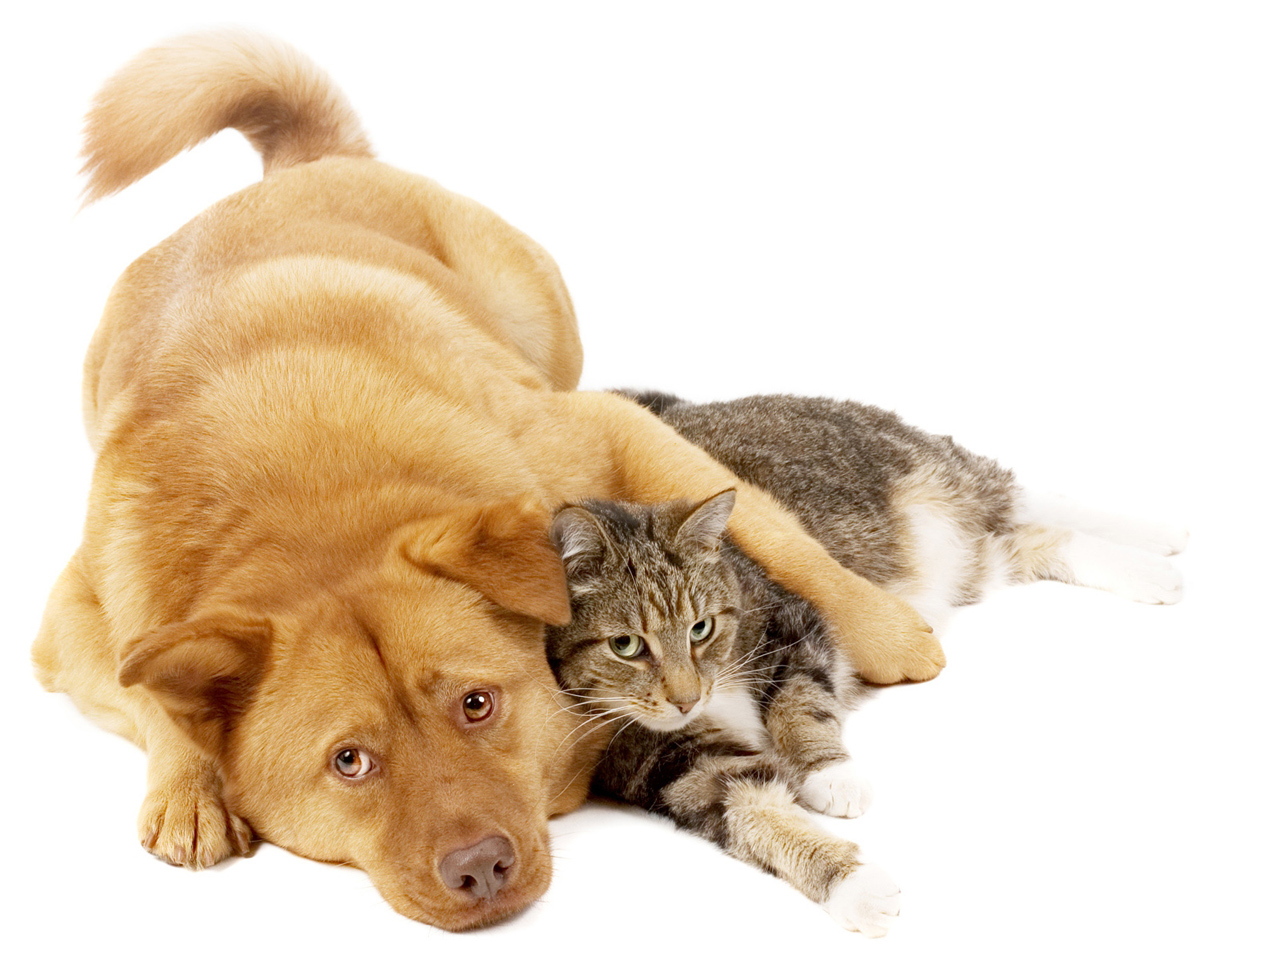 Free Download Dog And Cat On White Background Freecomputerdesktopwallpaper 1280 1280x960 For Your Desktop Mobile Tablet Explore 44 Wallpaper Dogs And Cats Free Cat Wallpaper And Screensavers Dog Wallpaper